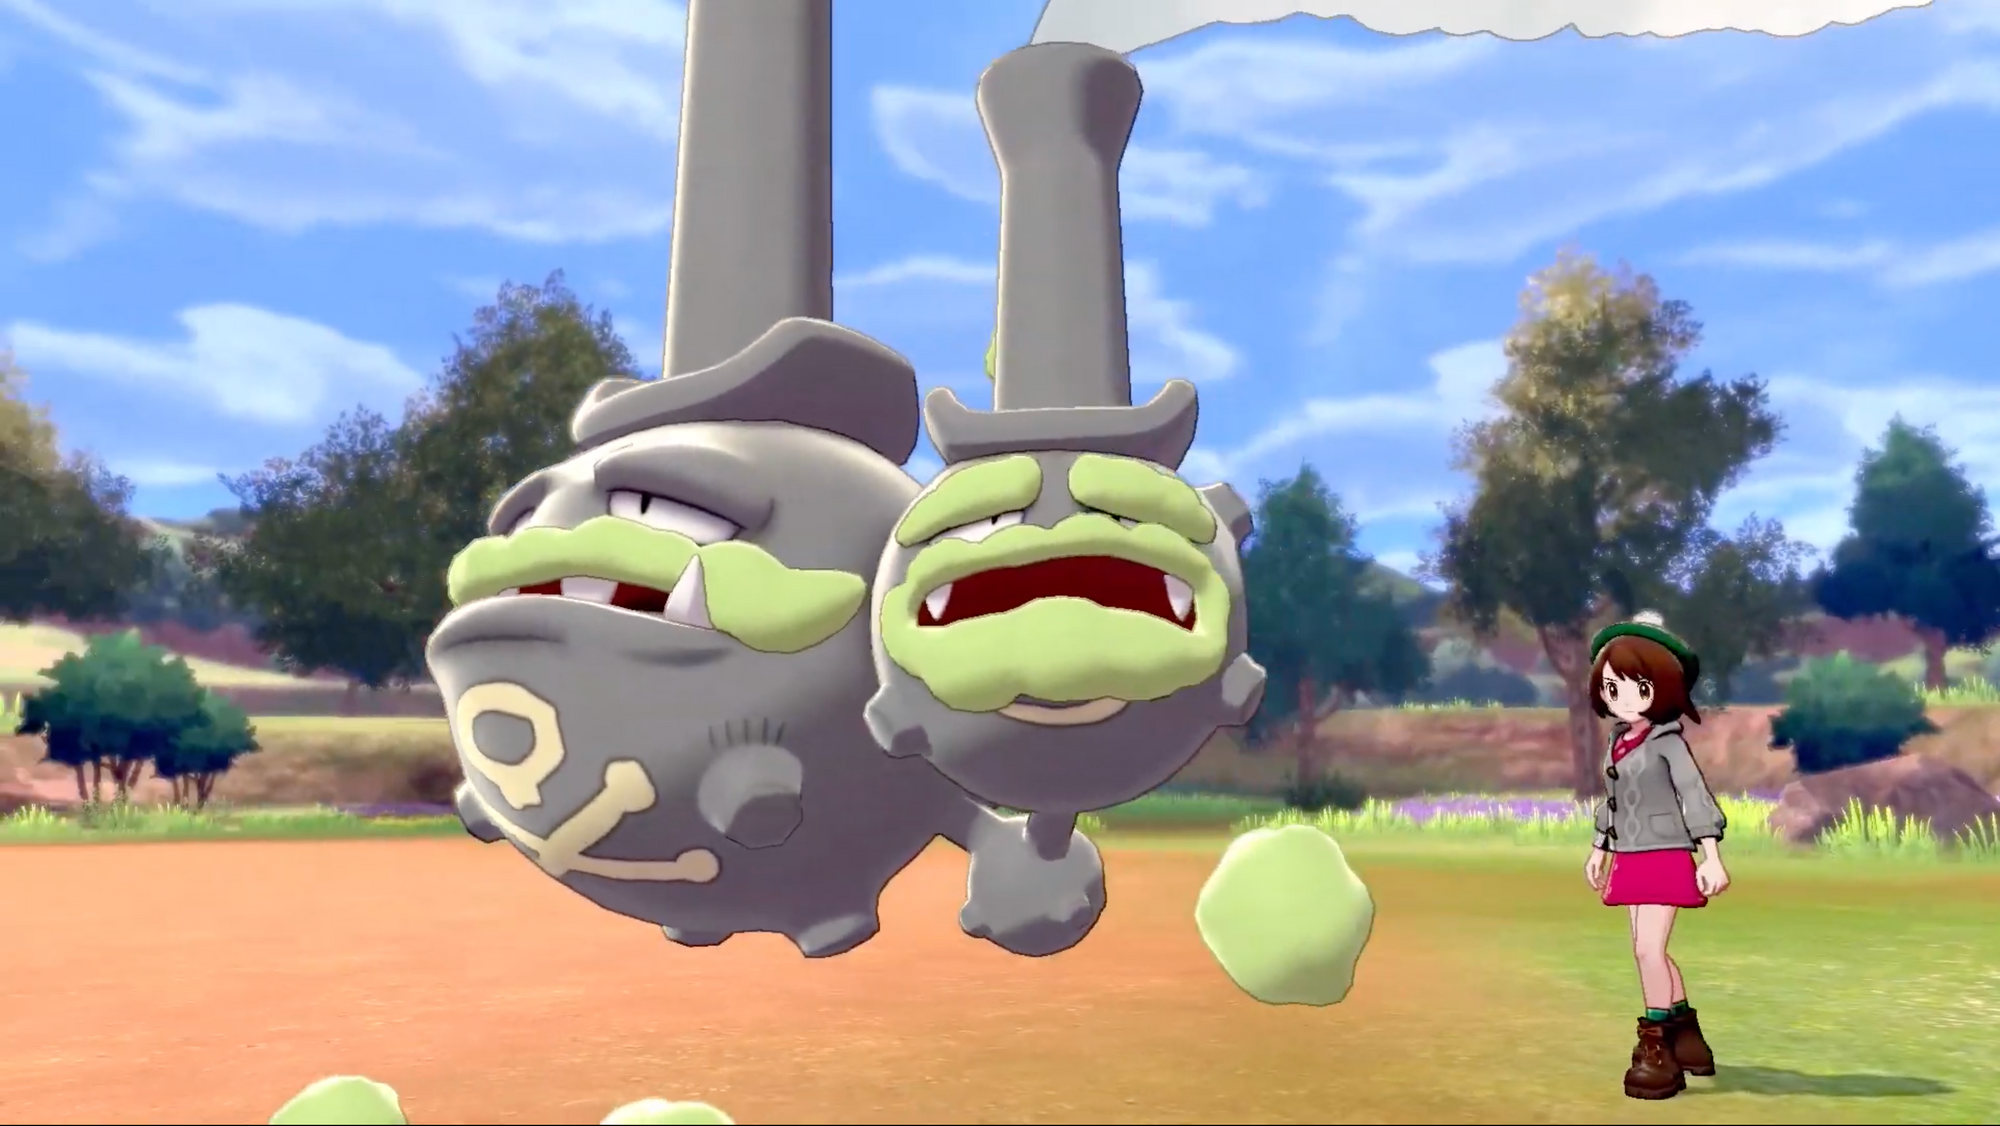 Galarian Forms, Rivals and Team Yell Announced for Pokemon Sword and Shield